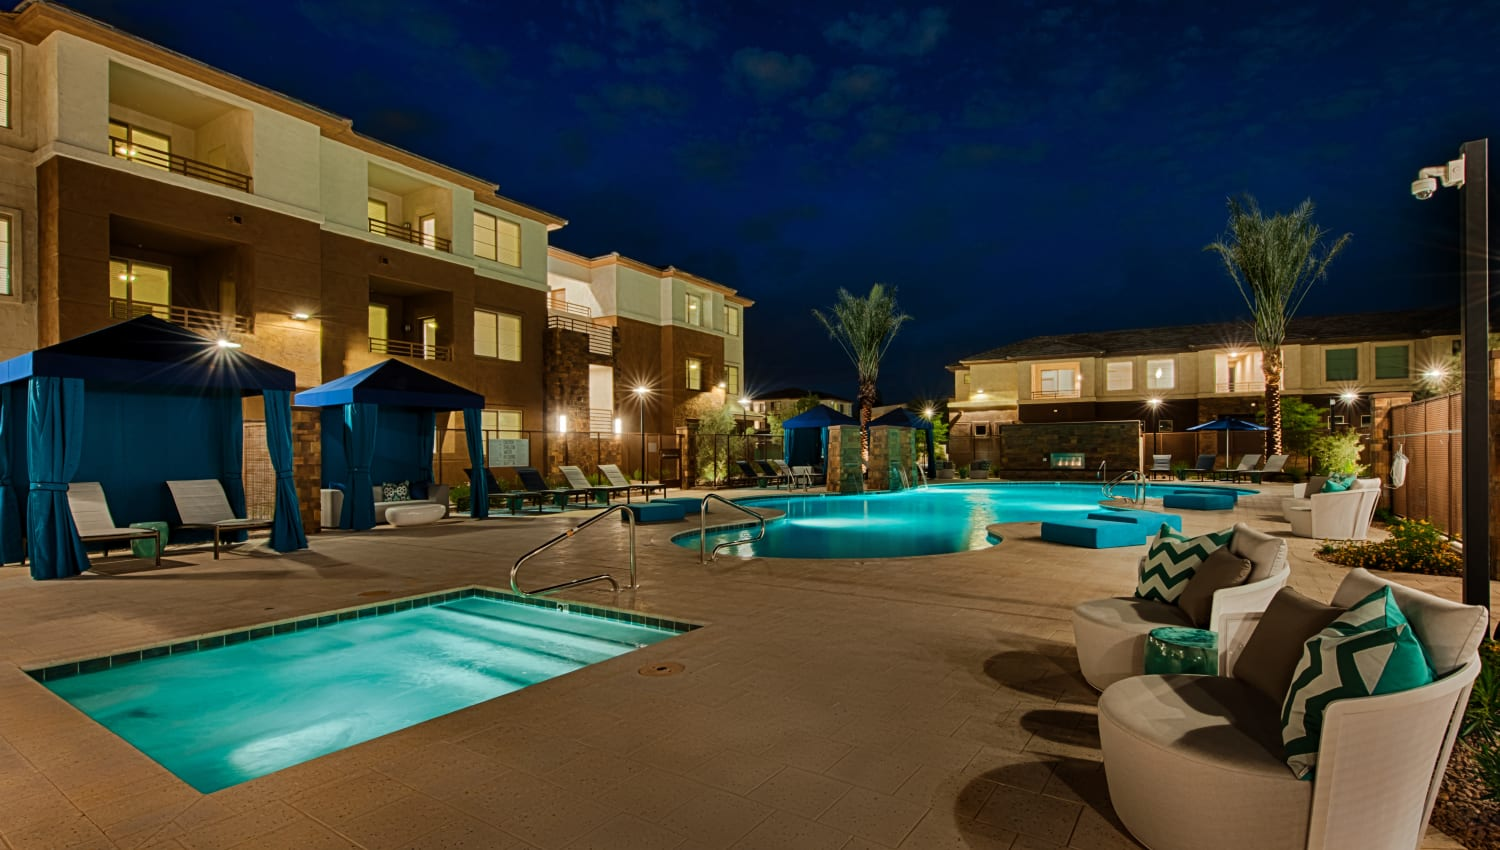 Outdoor spa at Ocio Plaza Del Rio in Peoria, Arizona